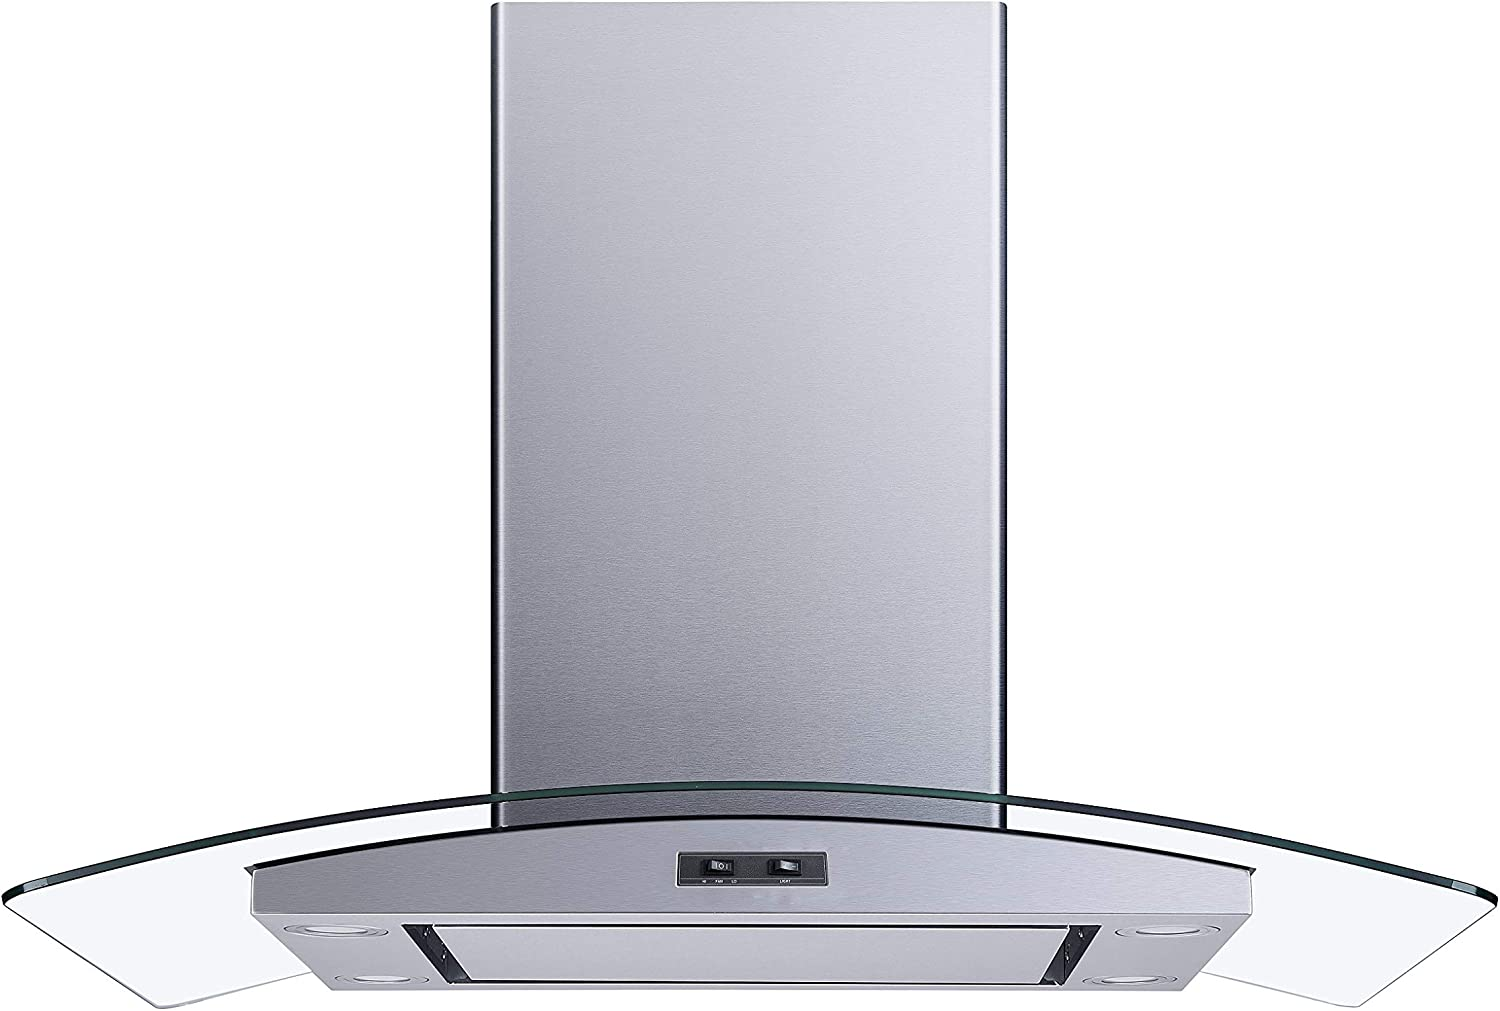 Winflo 36 In. Convertible Stainless Steel/Glass Wall Mount Range Hood with Mesh Filter and Stainless Steel Panel